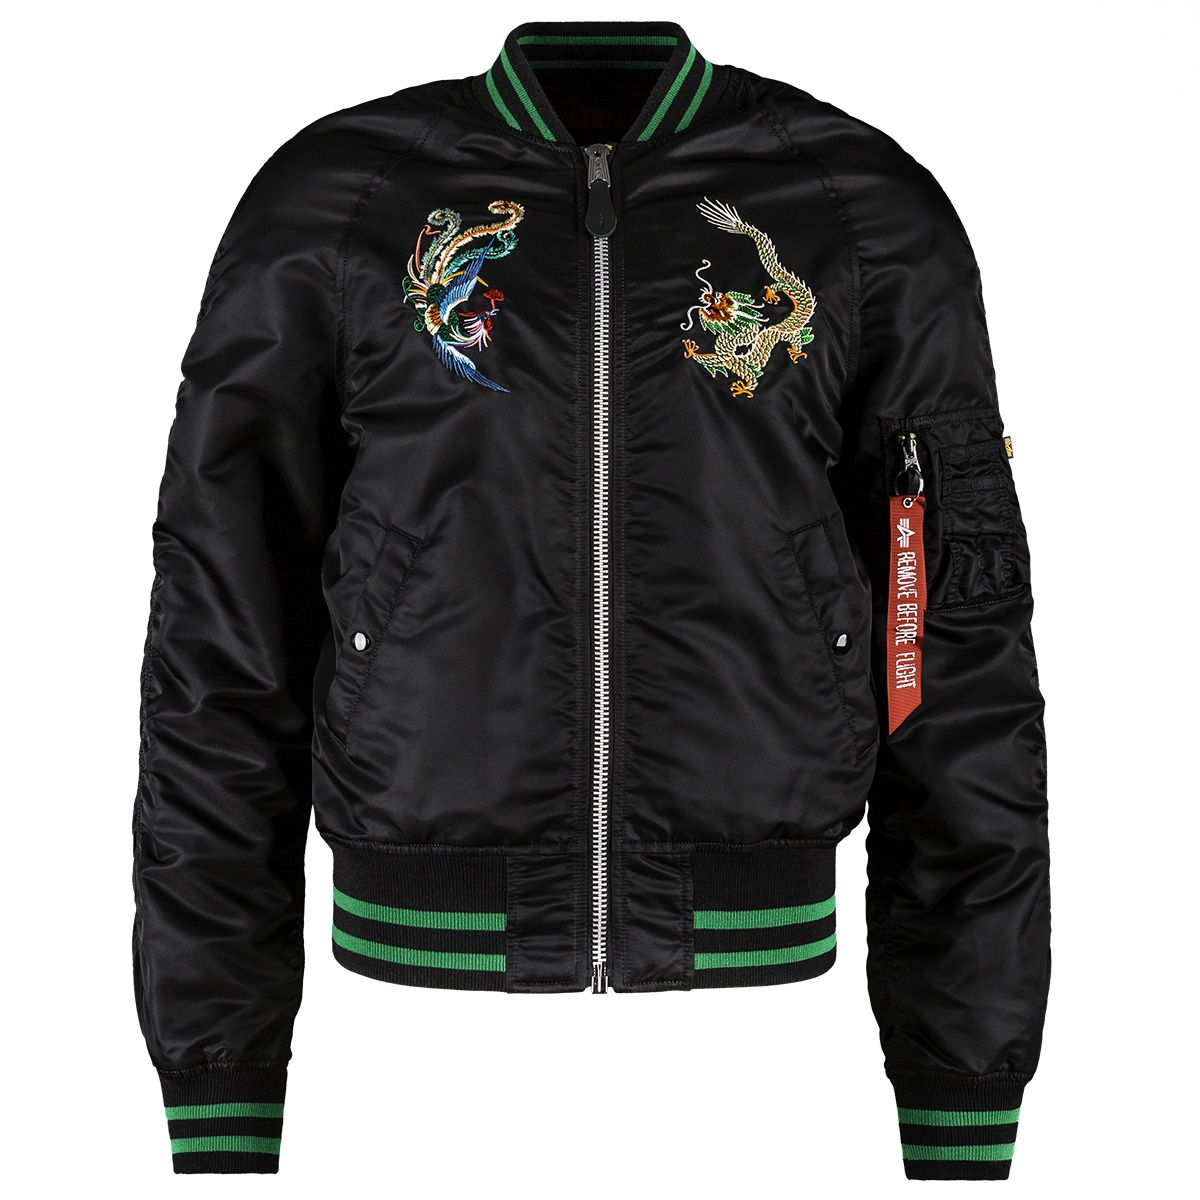 2196455a2 MA-1 Souvenir Year of the Rooster Flight Jacket | Boards, Art and ...